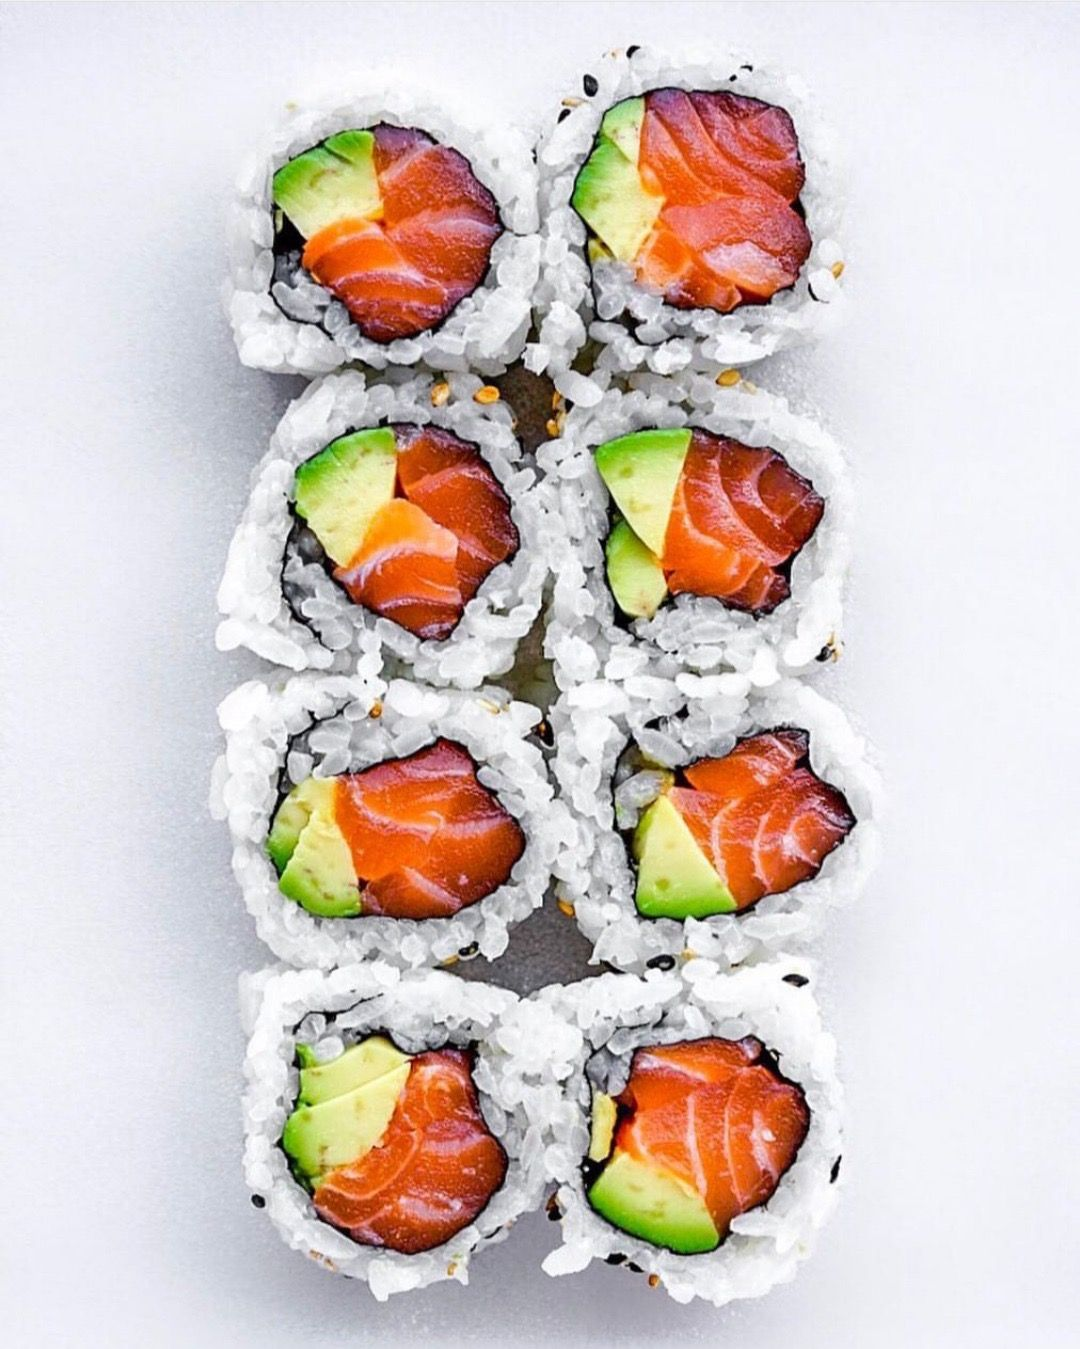 Pin By Katie Dempster On Japanese Food Sushi Recipes Food Goals Pretty Food